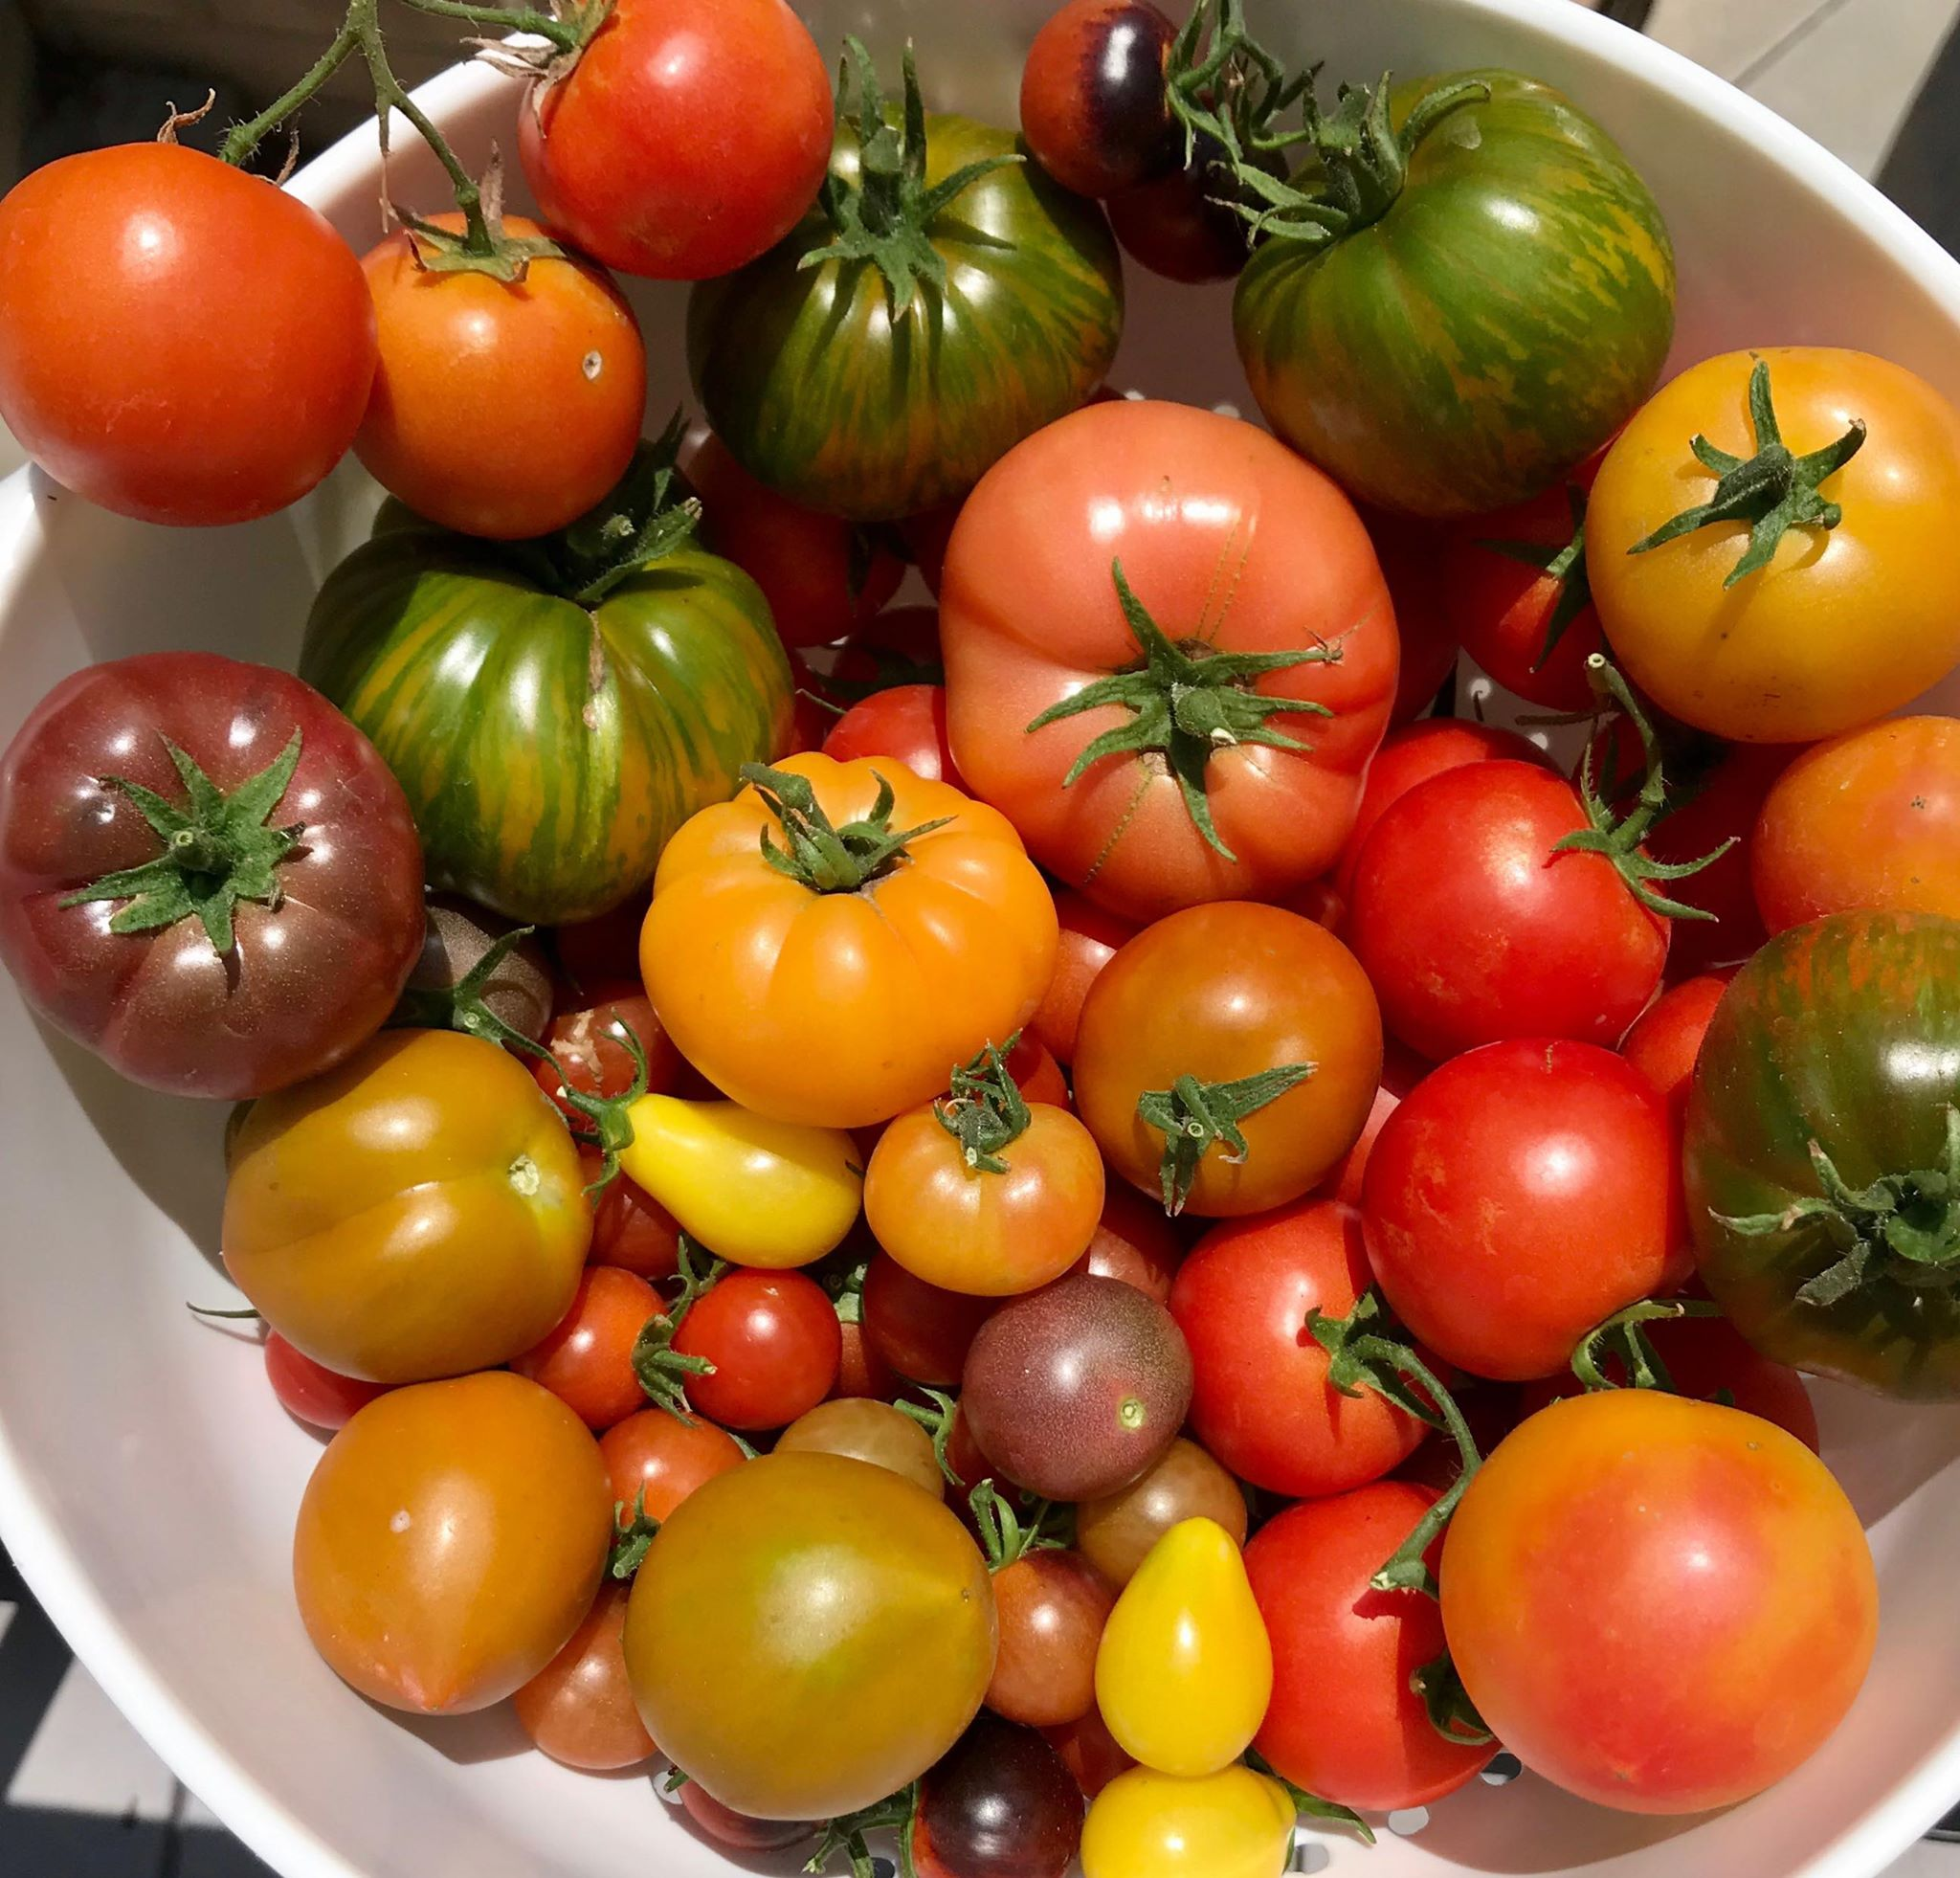 Basket full of heirloom tomatoes